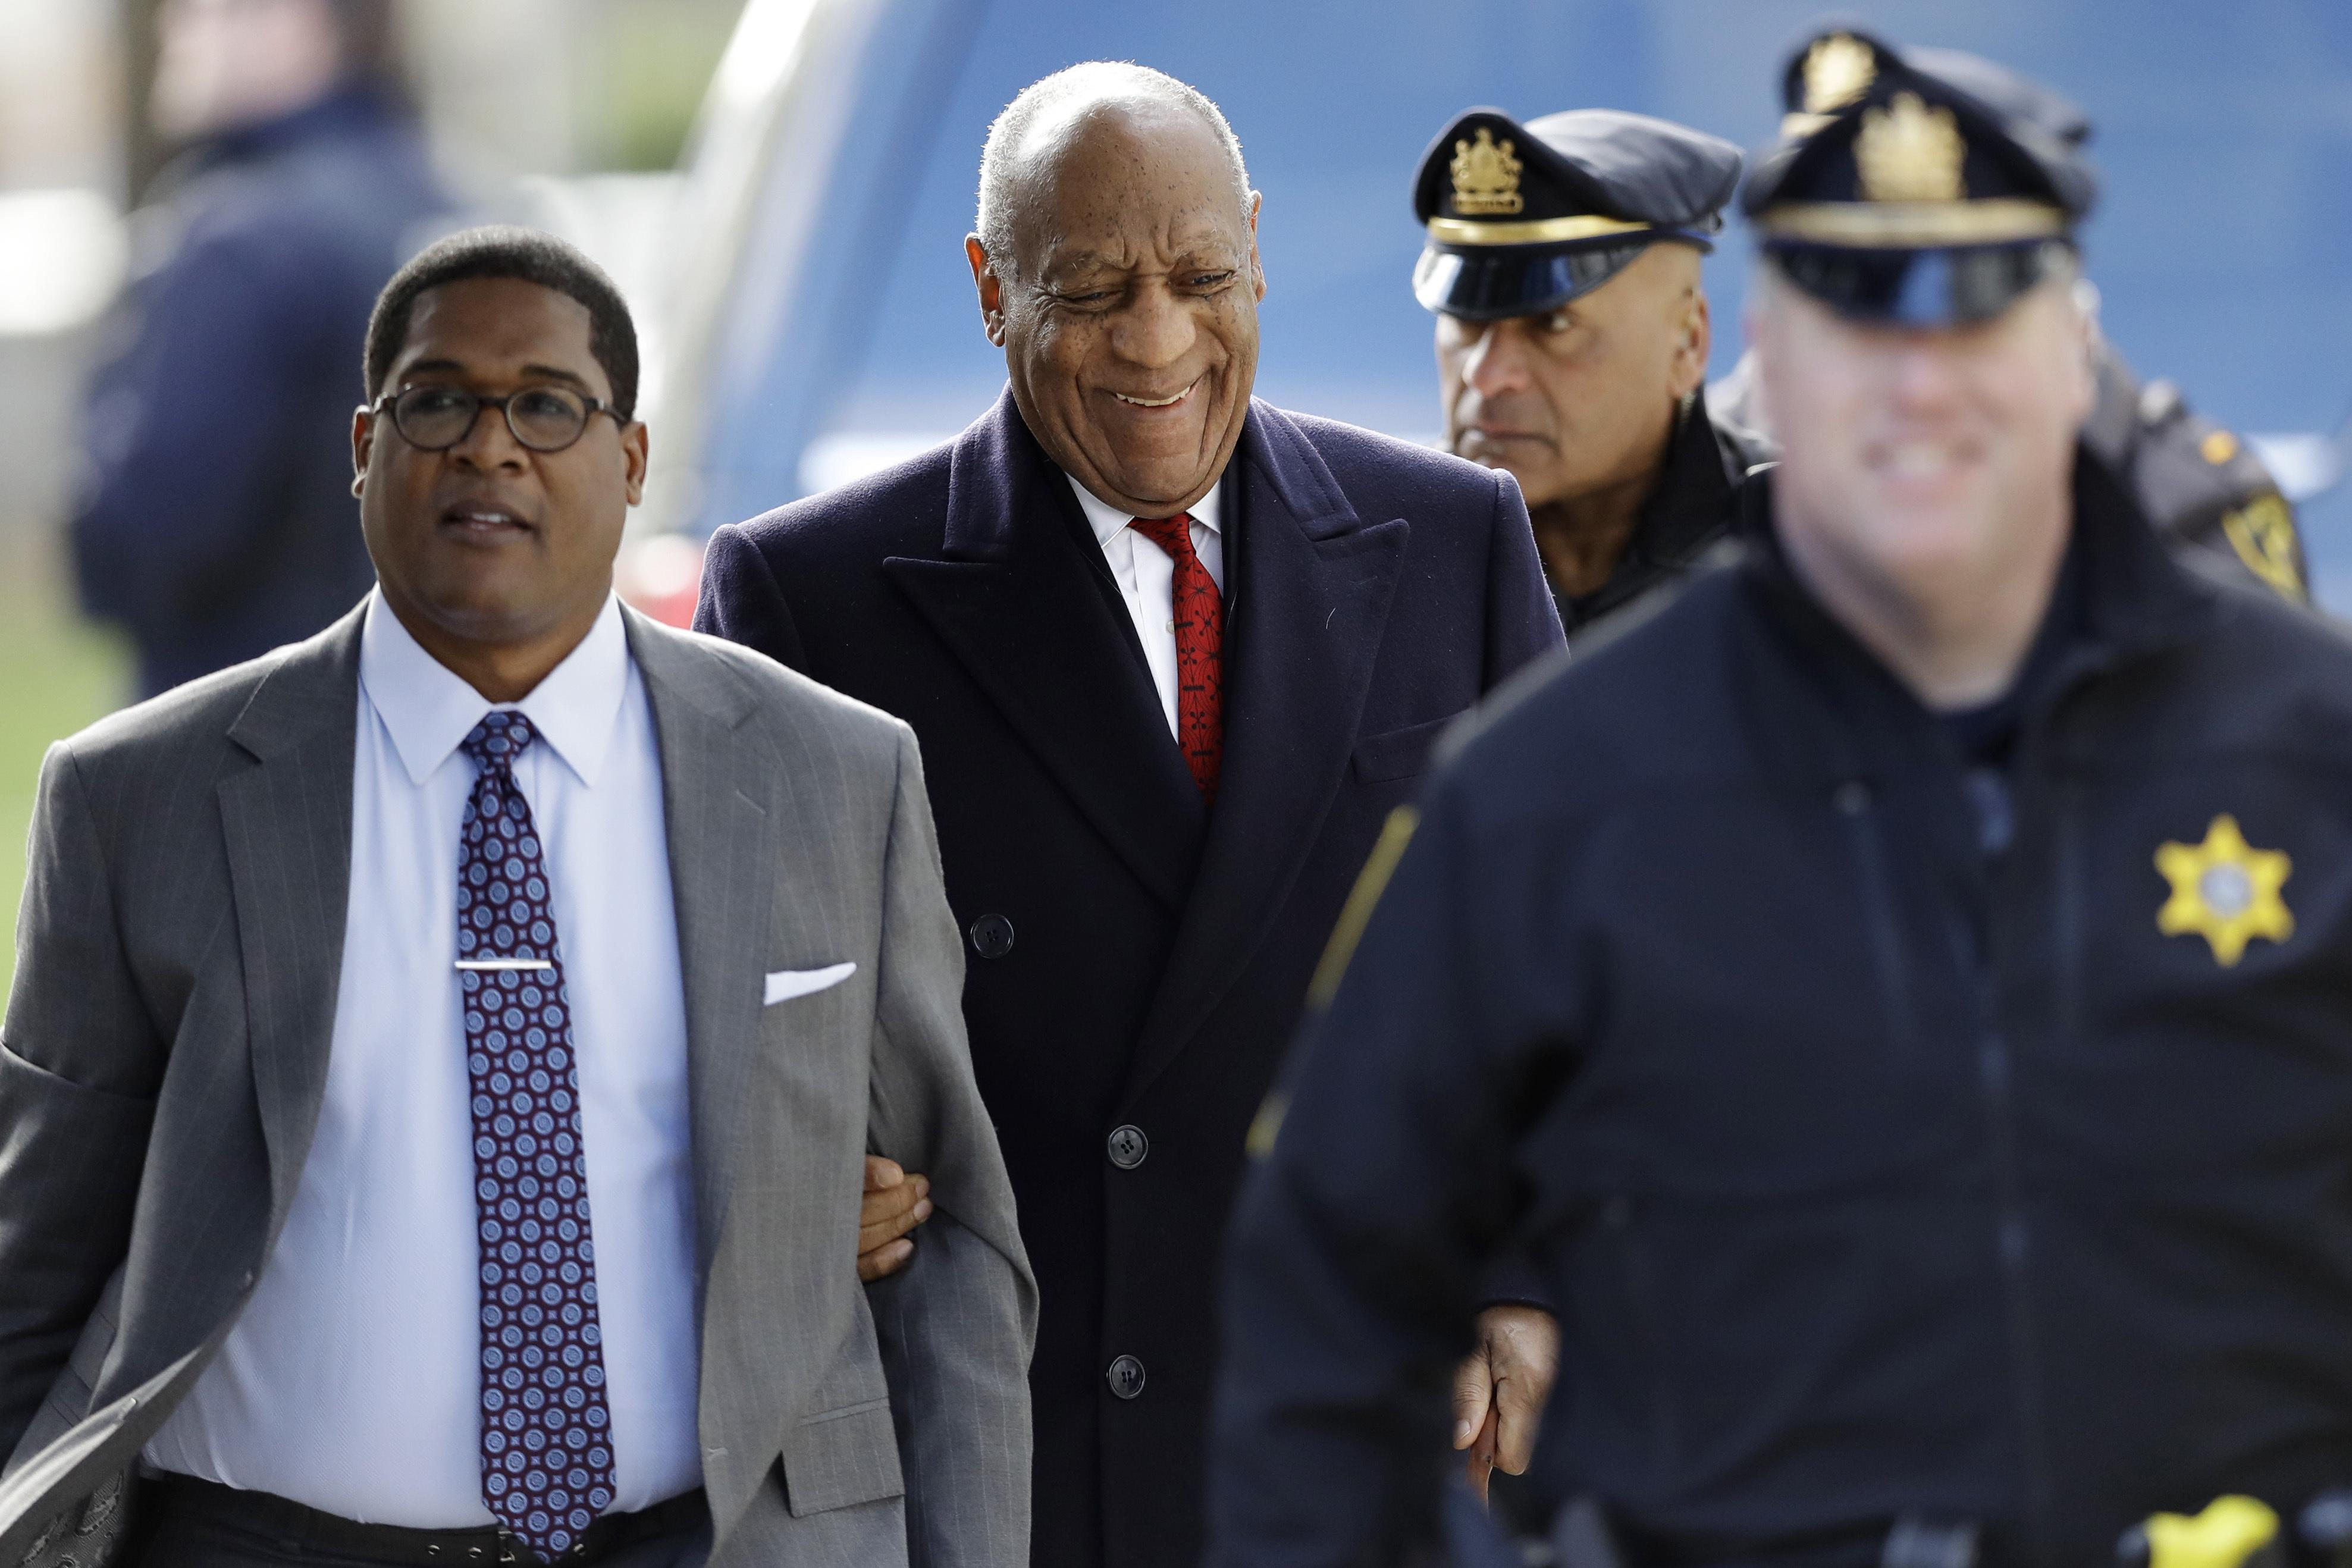 Bill Cosby arrives for his sexual assault trial, Friday, April 20, 2018, at the Montgomery County Courthouse in Norristown, Pa.